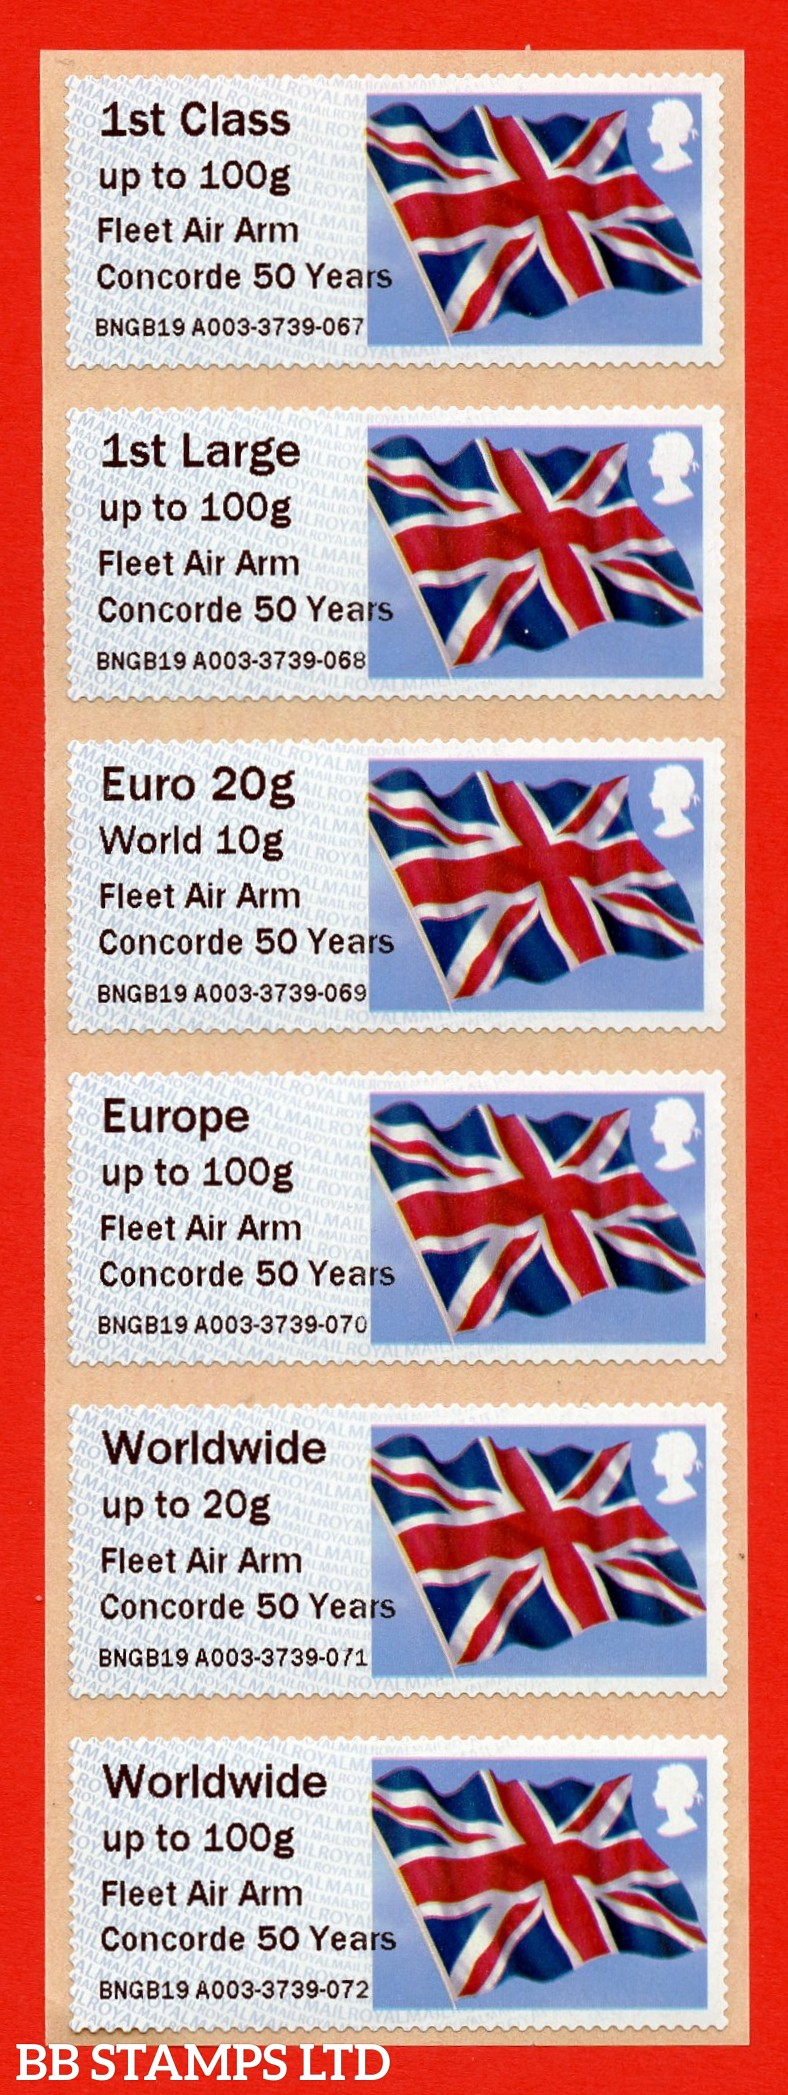 Union Flag Fleet Air Arm Concorde 50 Years: Type IIIA NO YEAR CODE 1st - W/Wide 100g (set of 6) (BK29,P1)